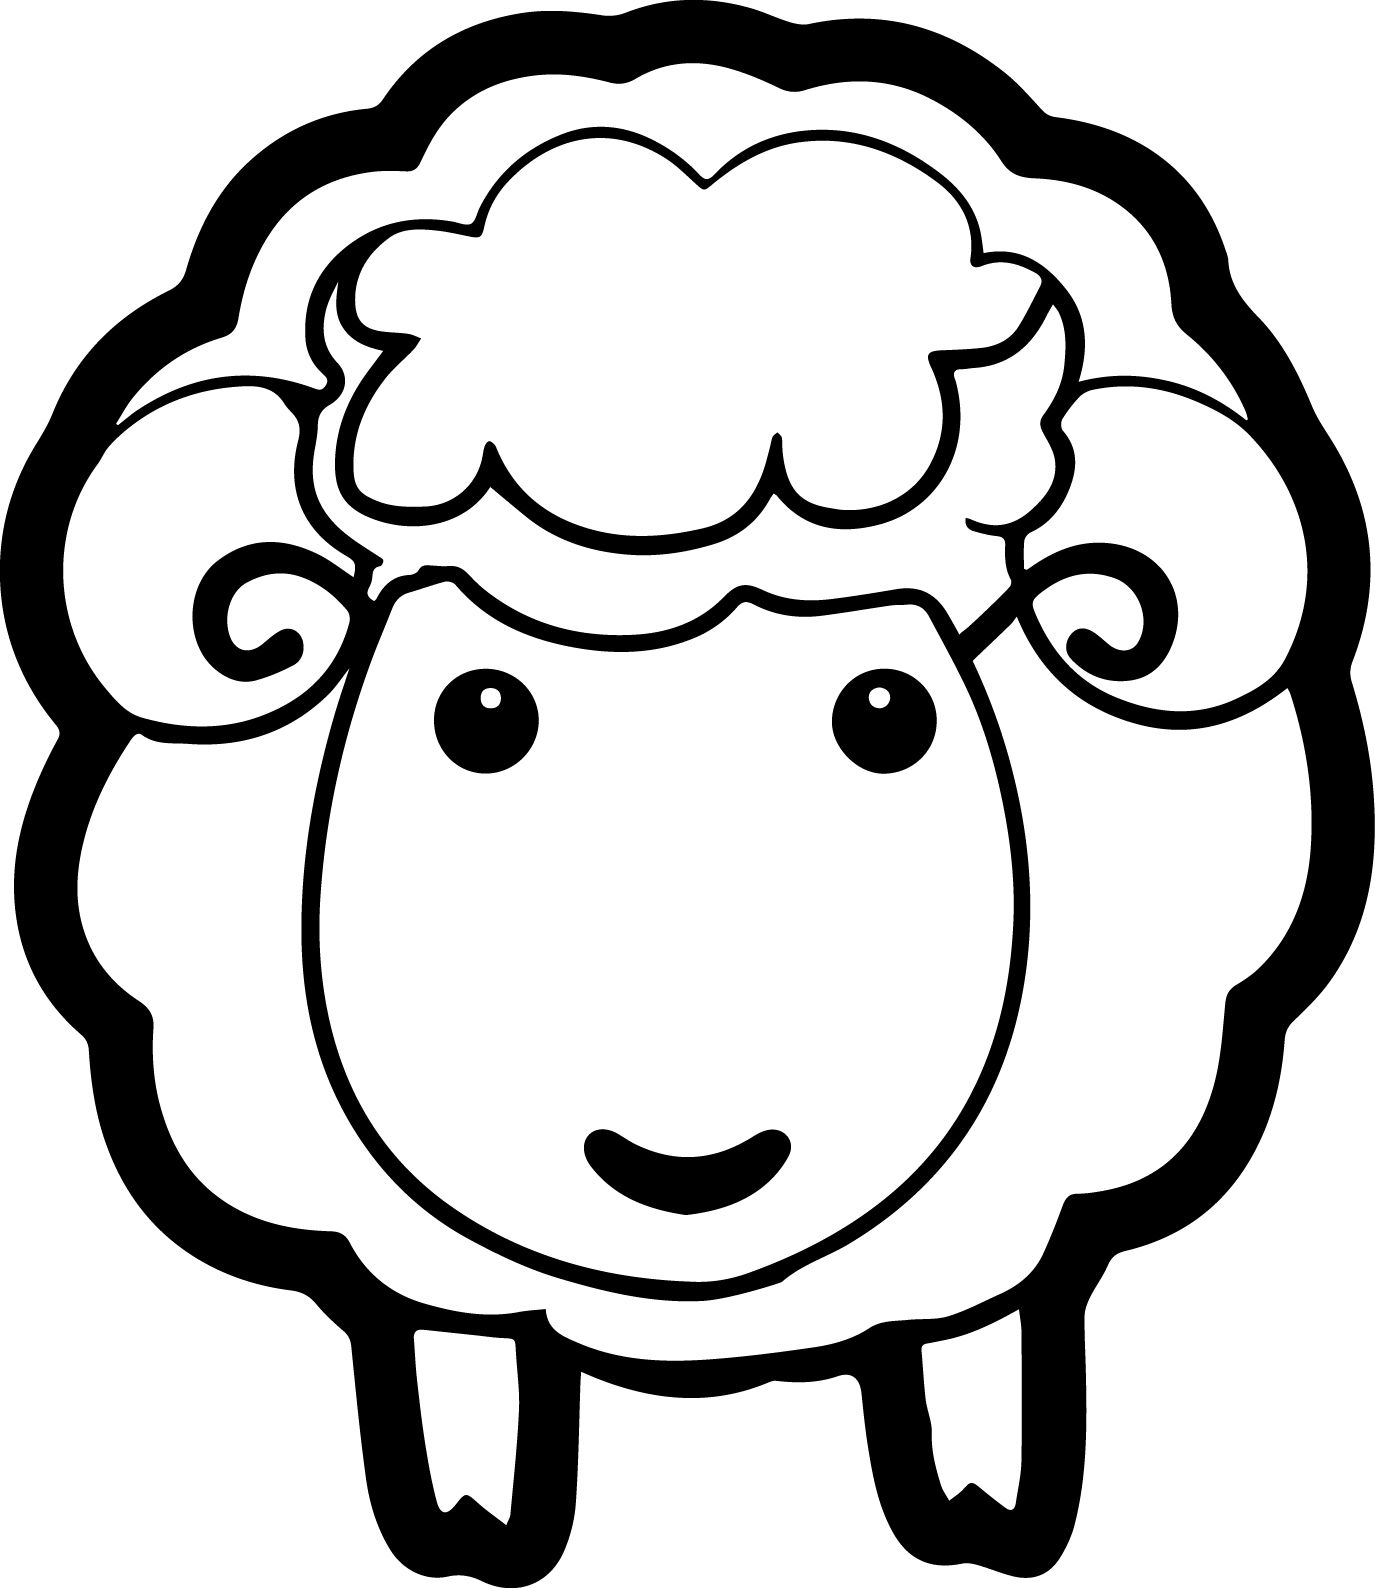 Sheep Coloring Pages Farm Animal Coloring Pages Sheep Face Dog Coloring Page